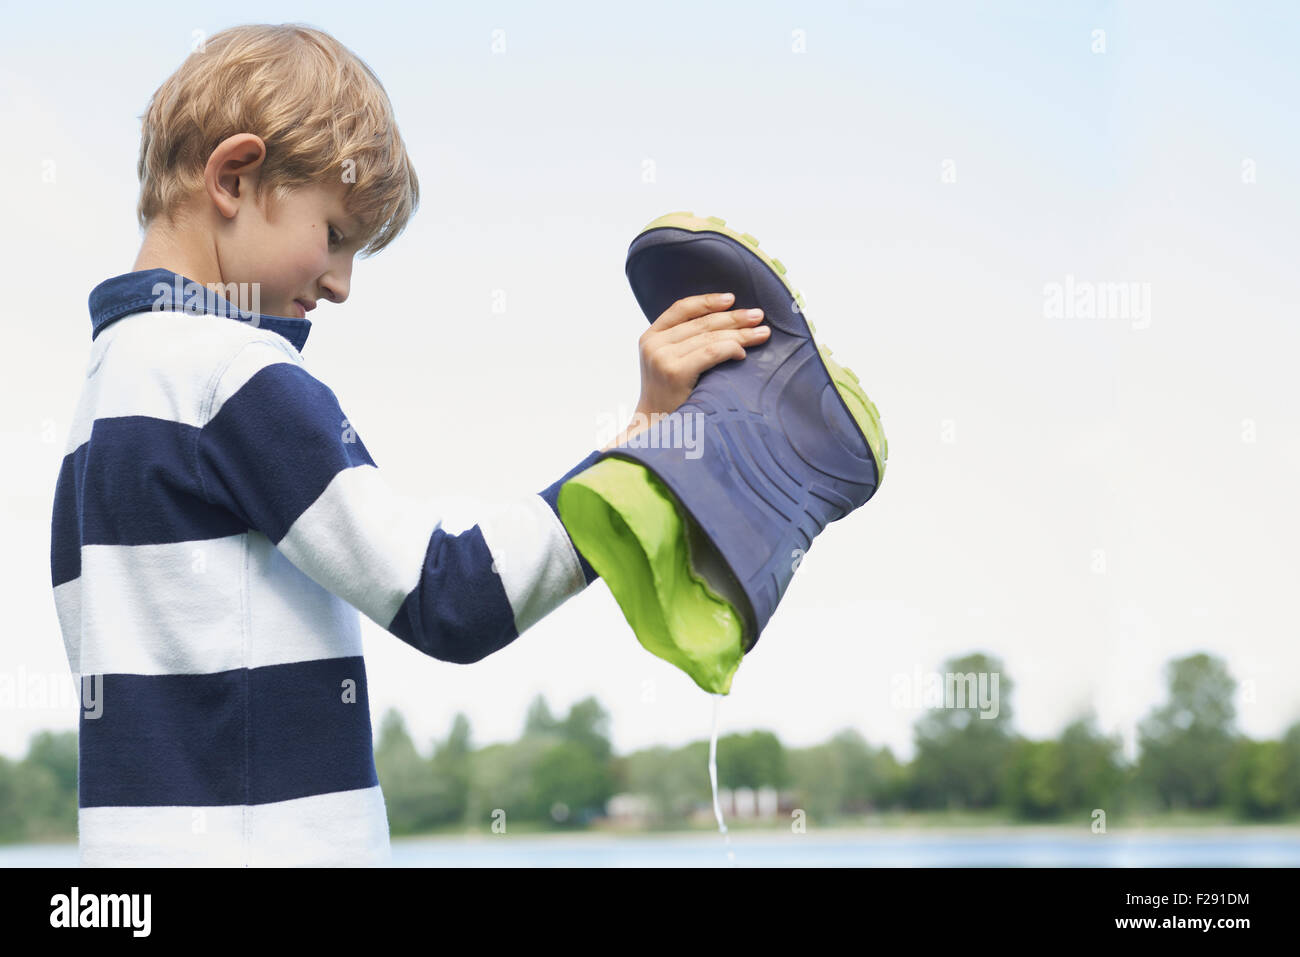 Boy pouring water out of a rubber boot, Bavaria, Germany - Stock Image